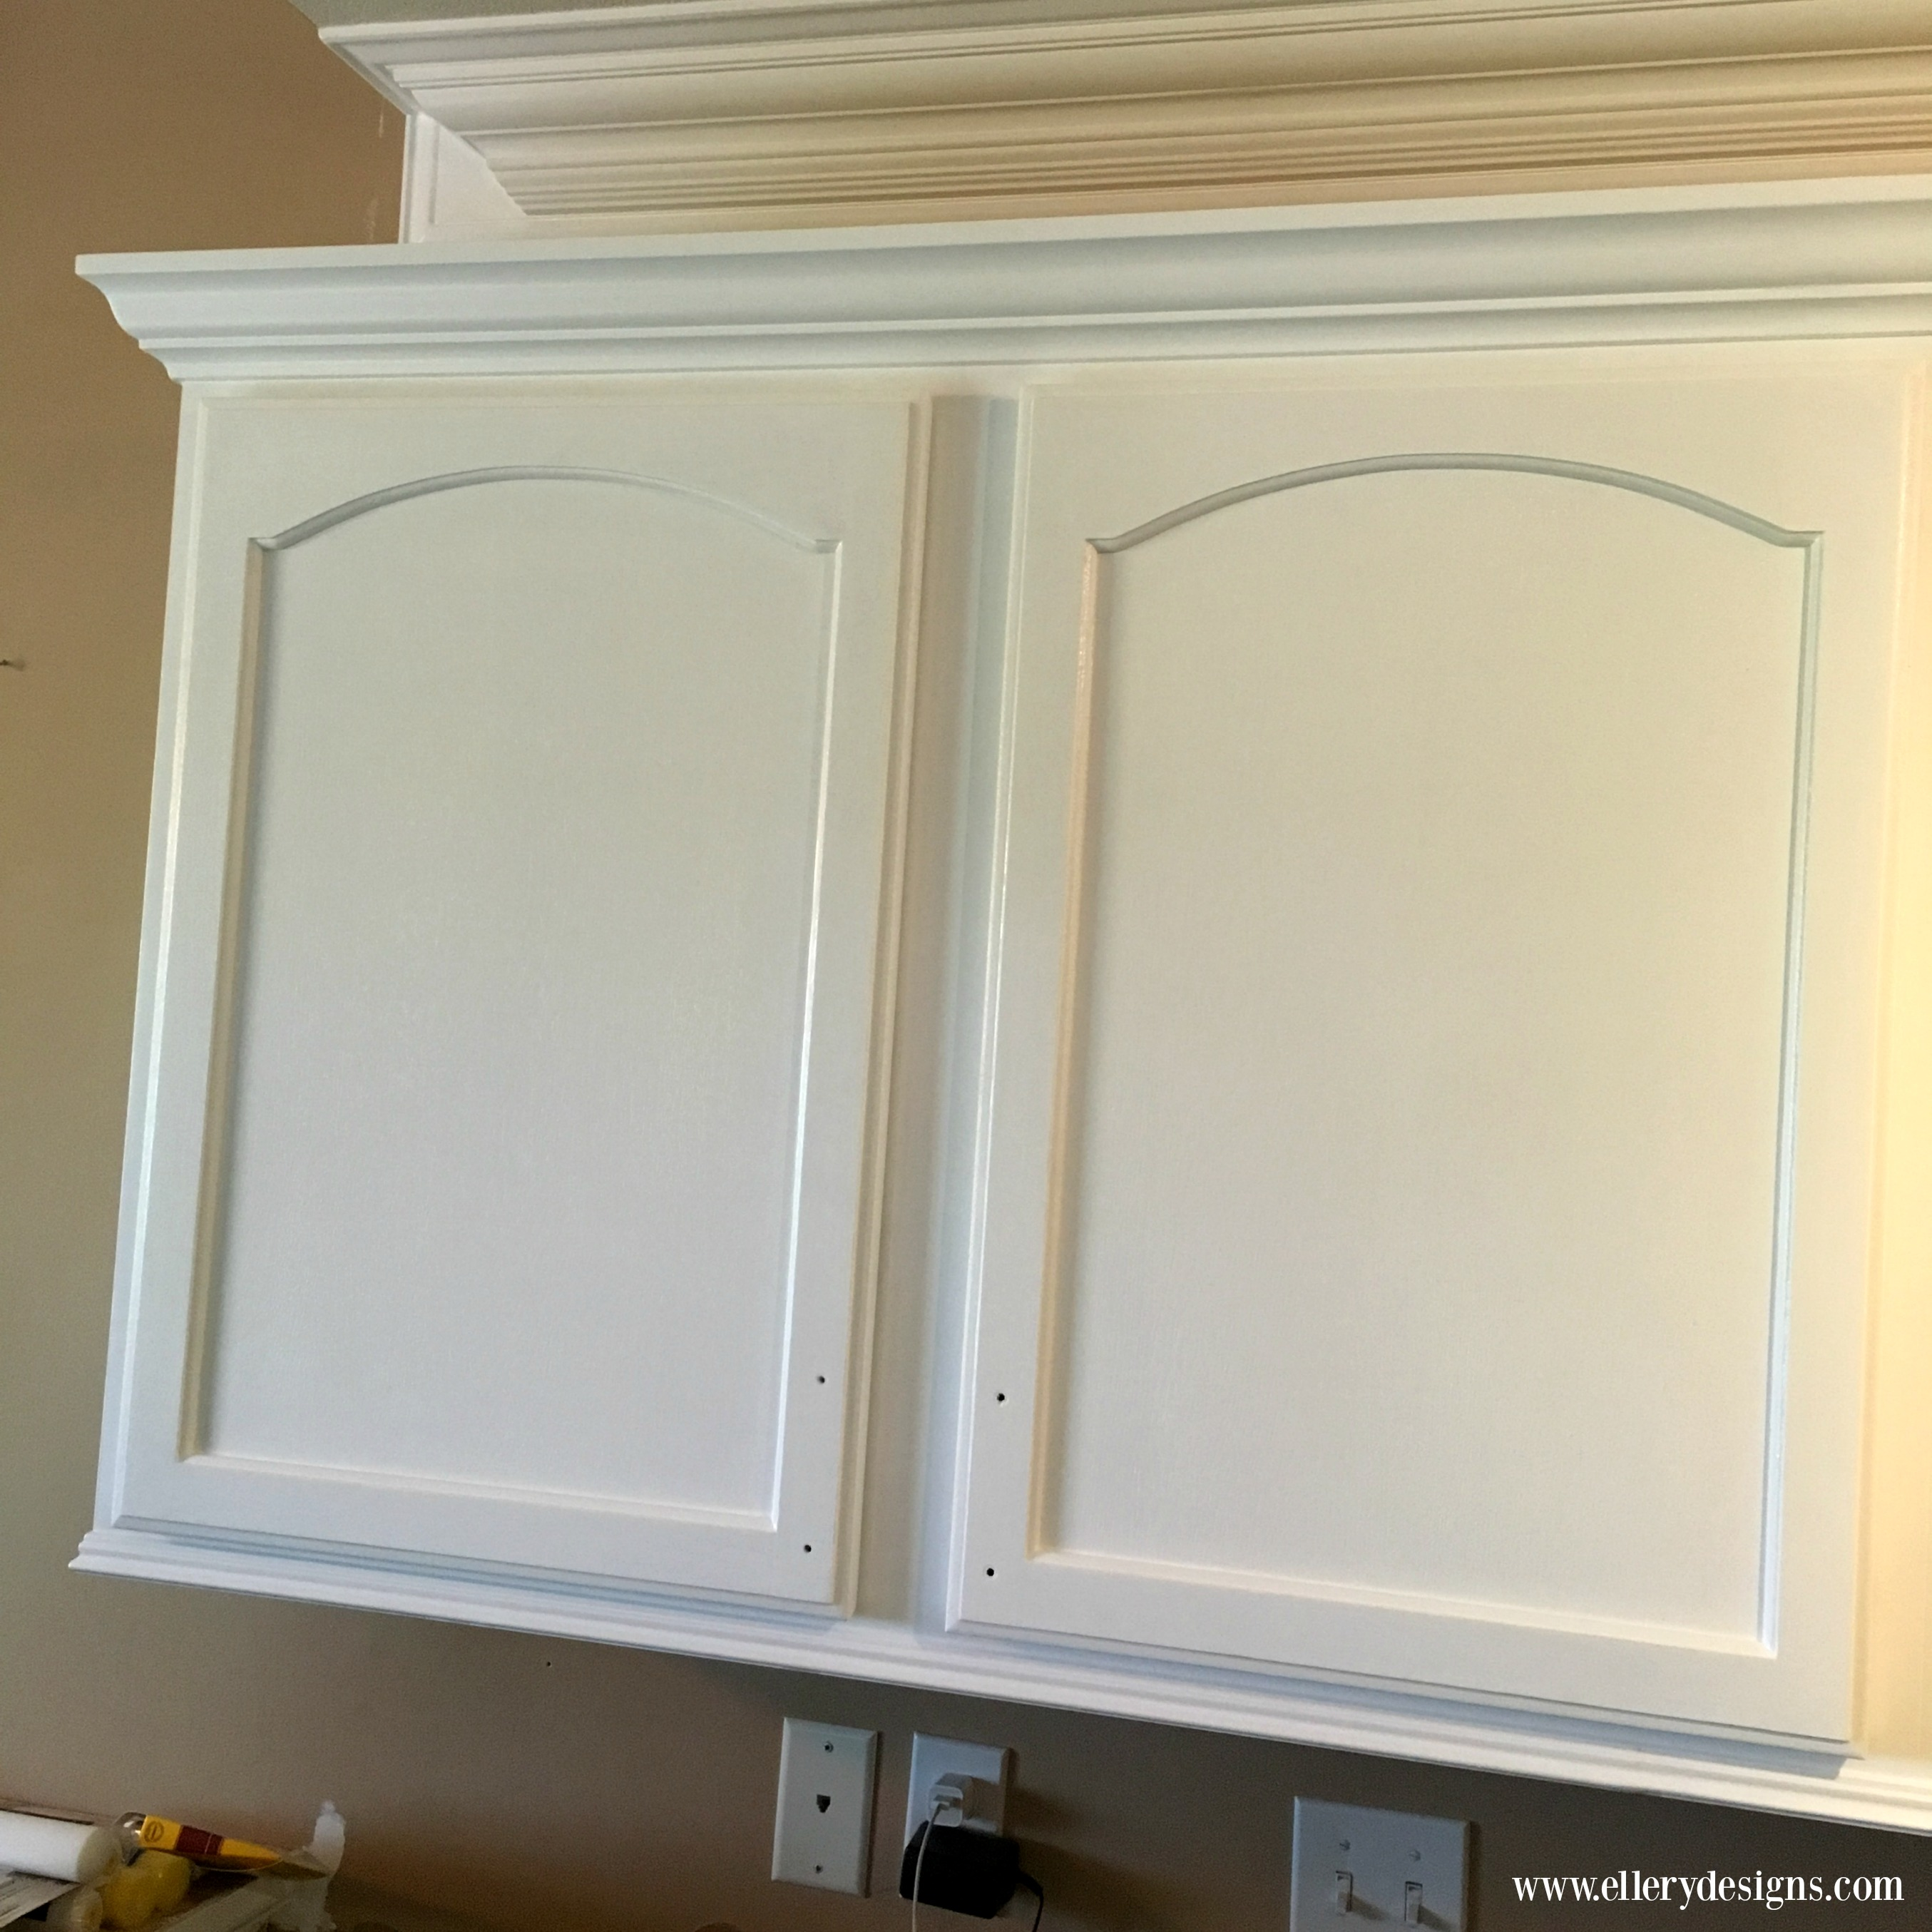 Our Diy Kitchen Remodel Painting Your Cabinets White Ellery Designs